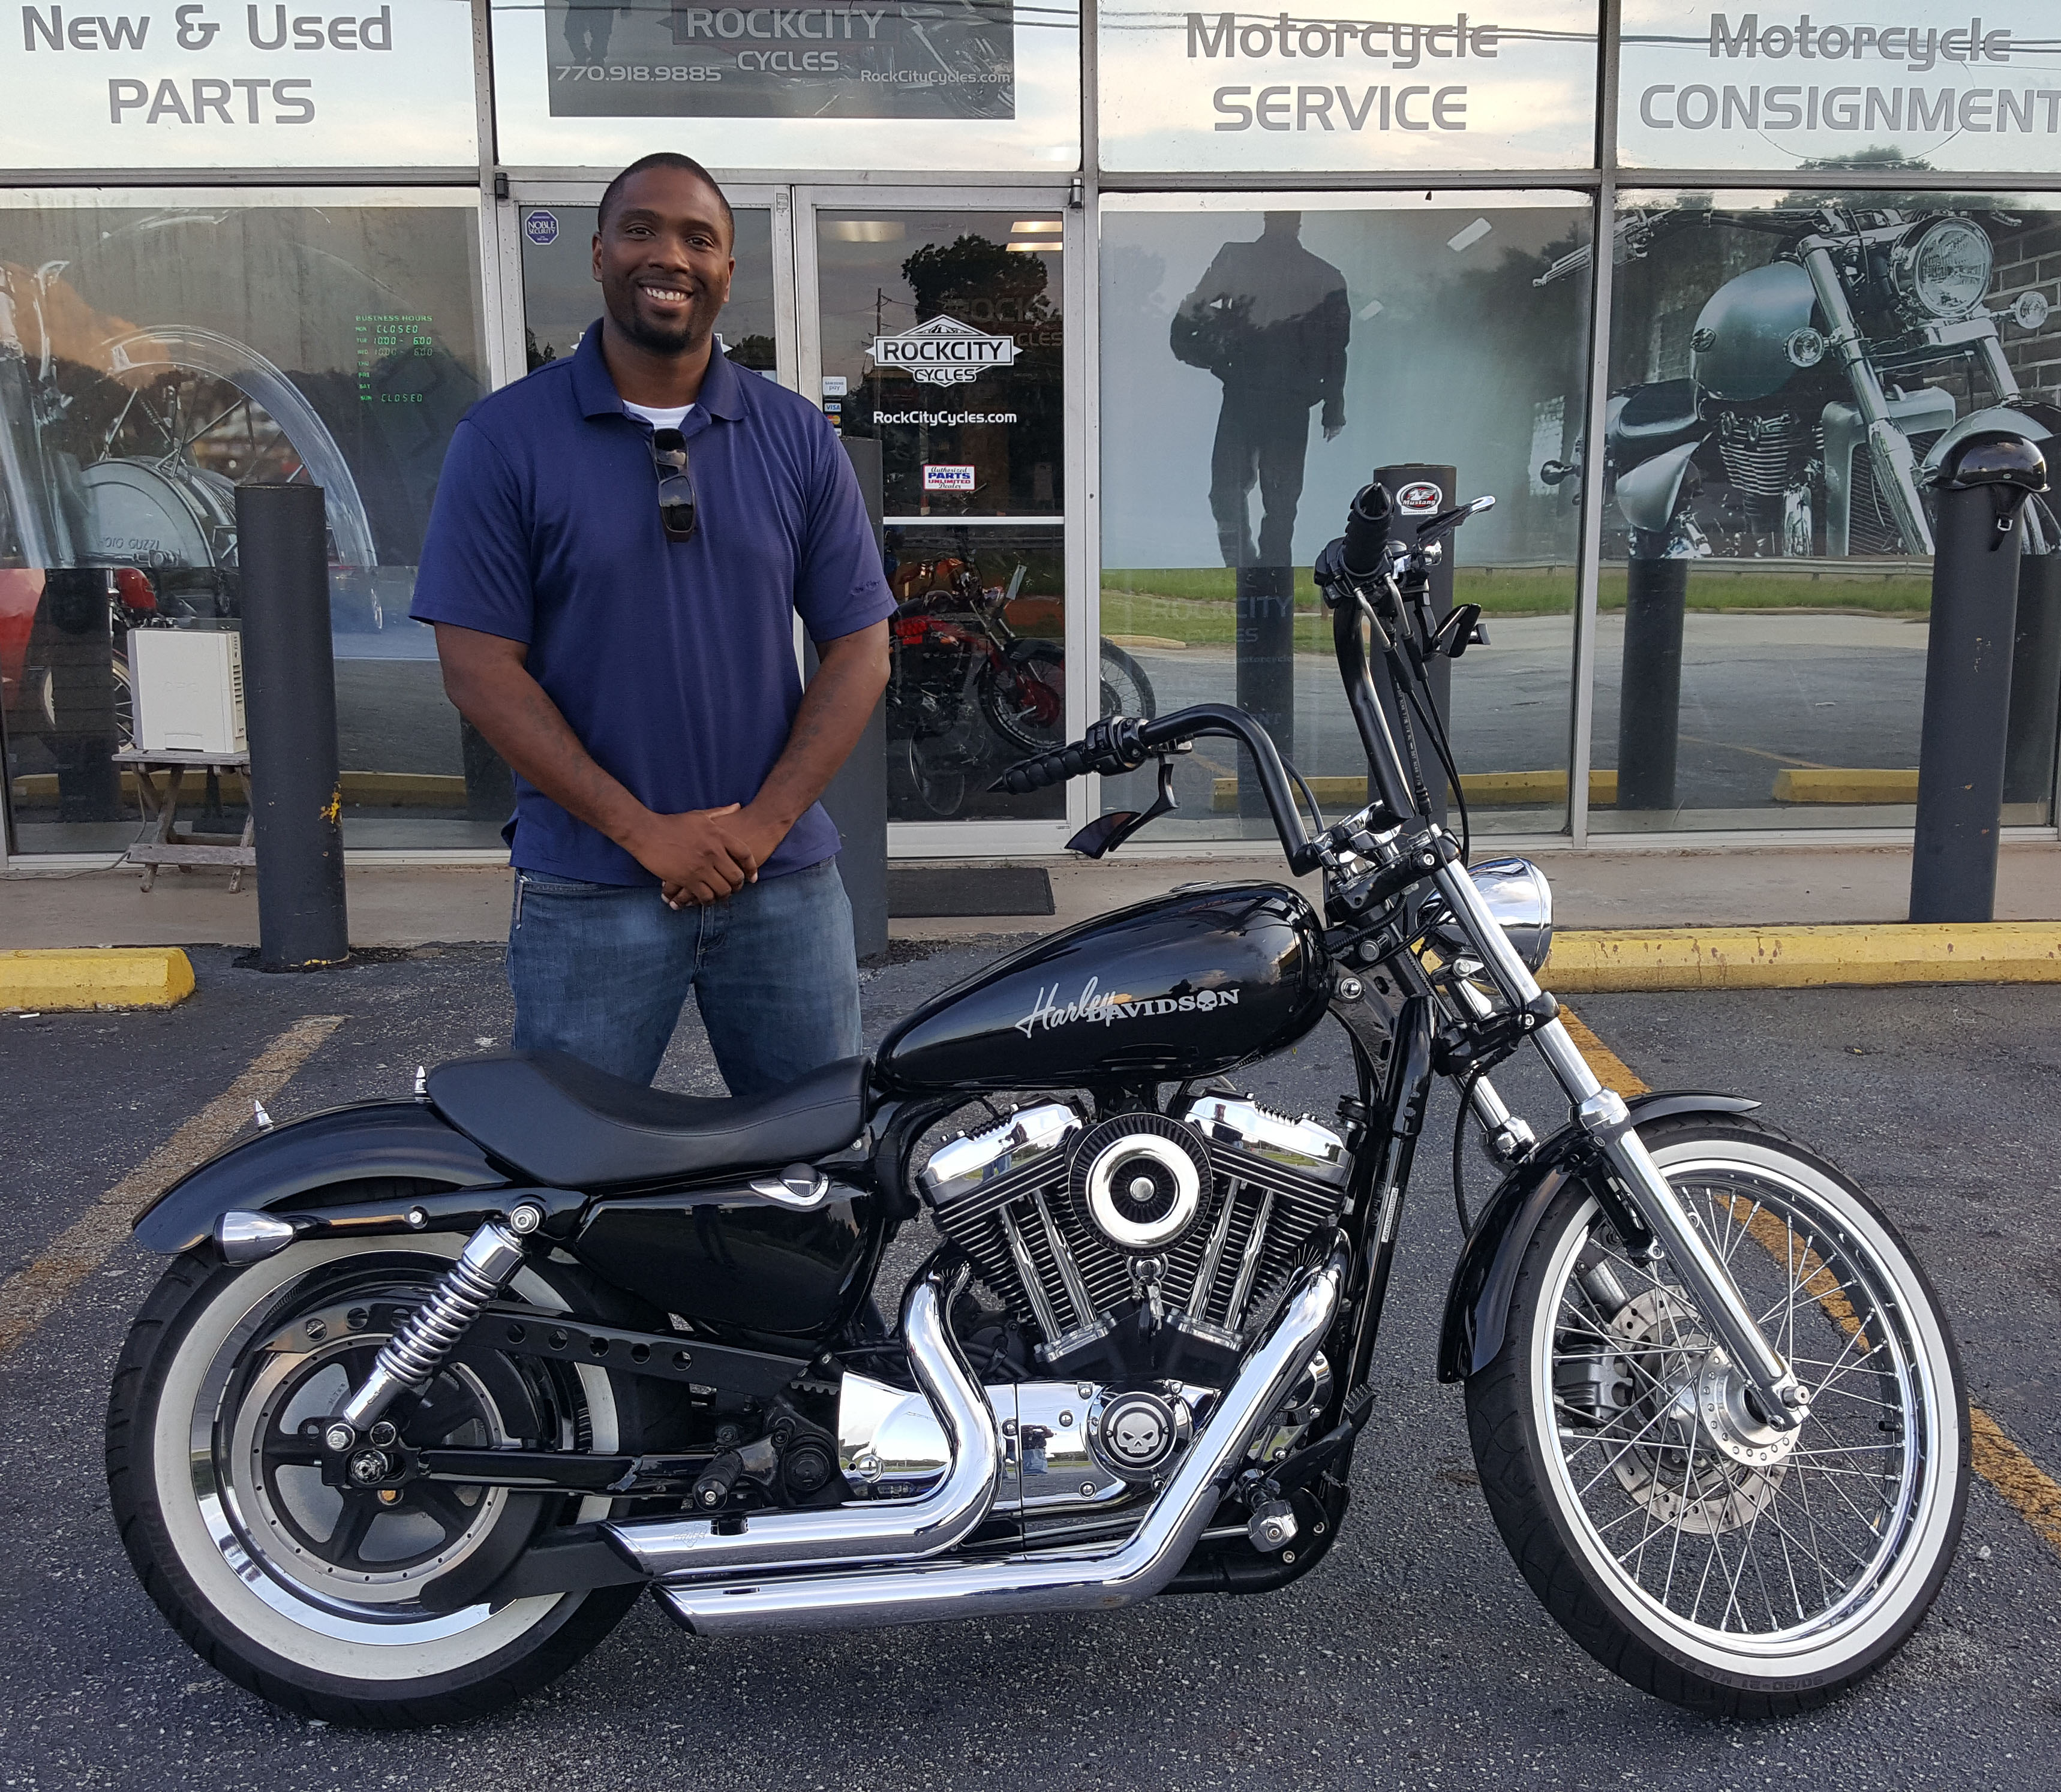 Stanley B. with his 2007 Harley-Davidson XL1200C Sportster